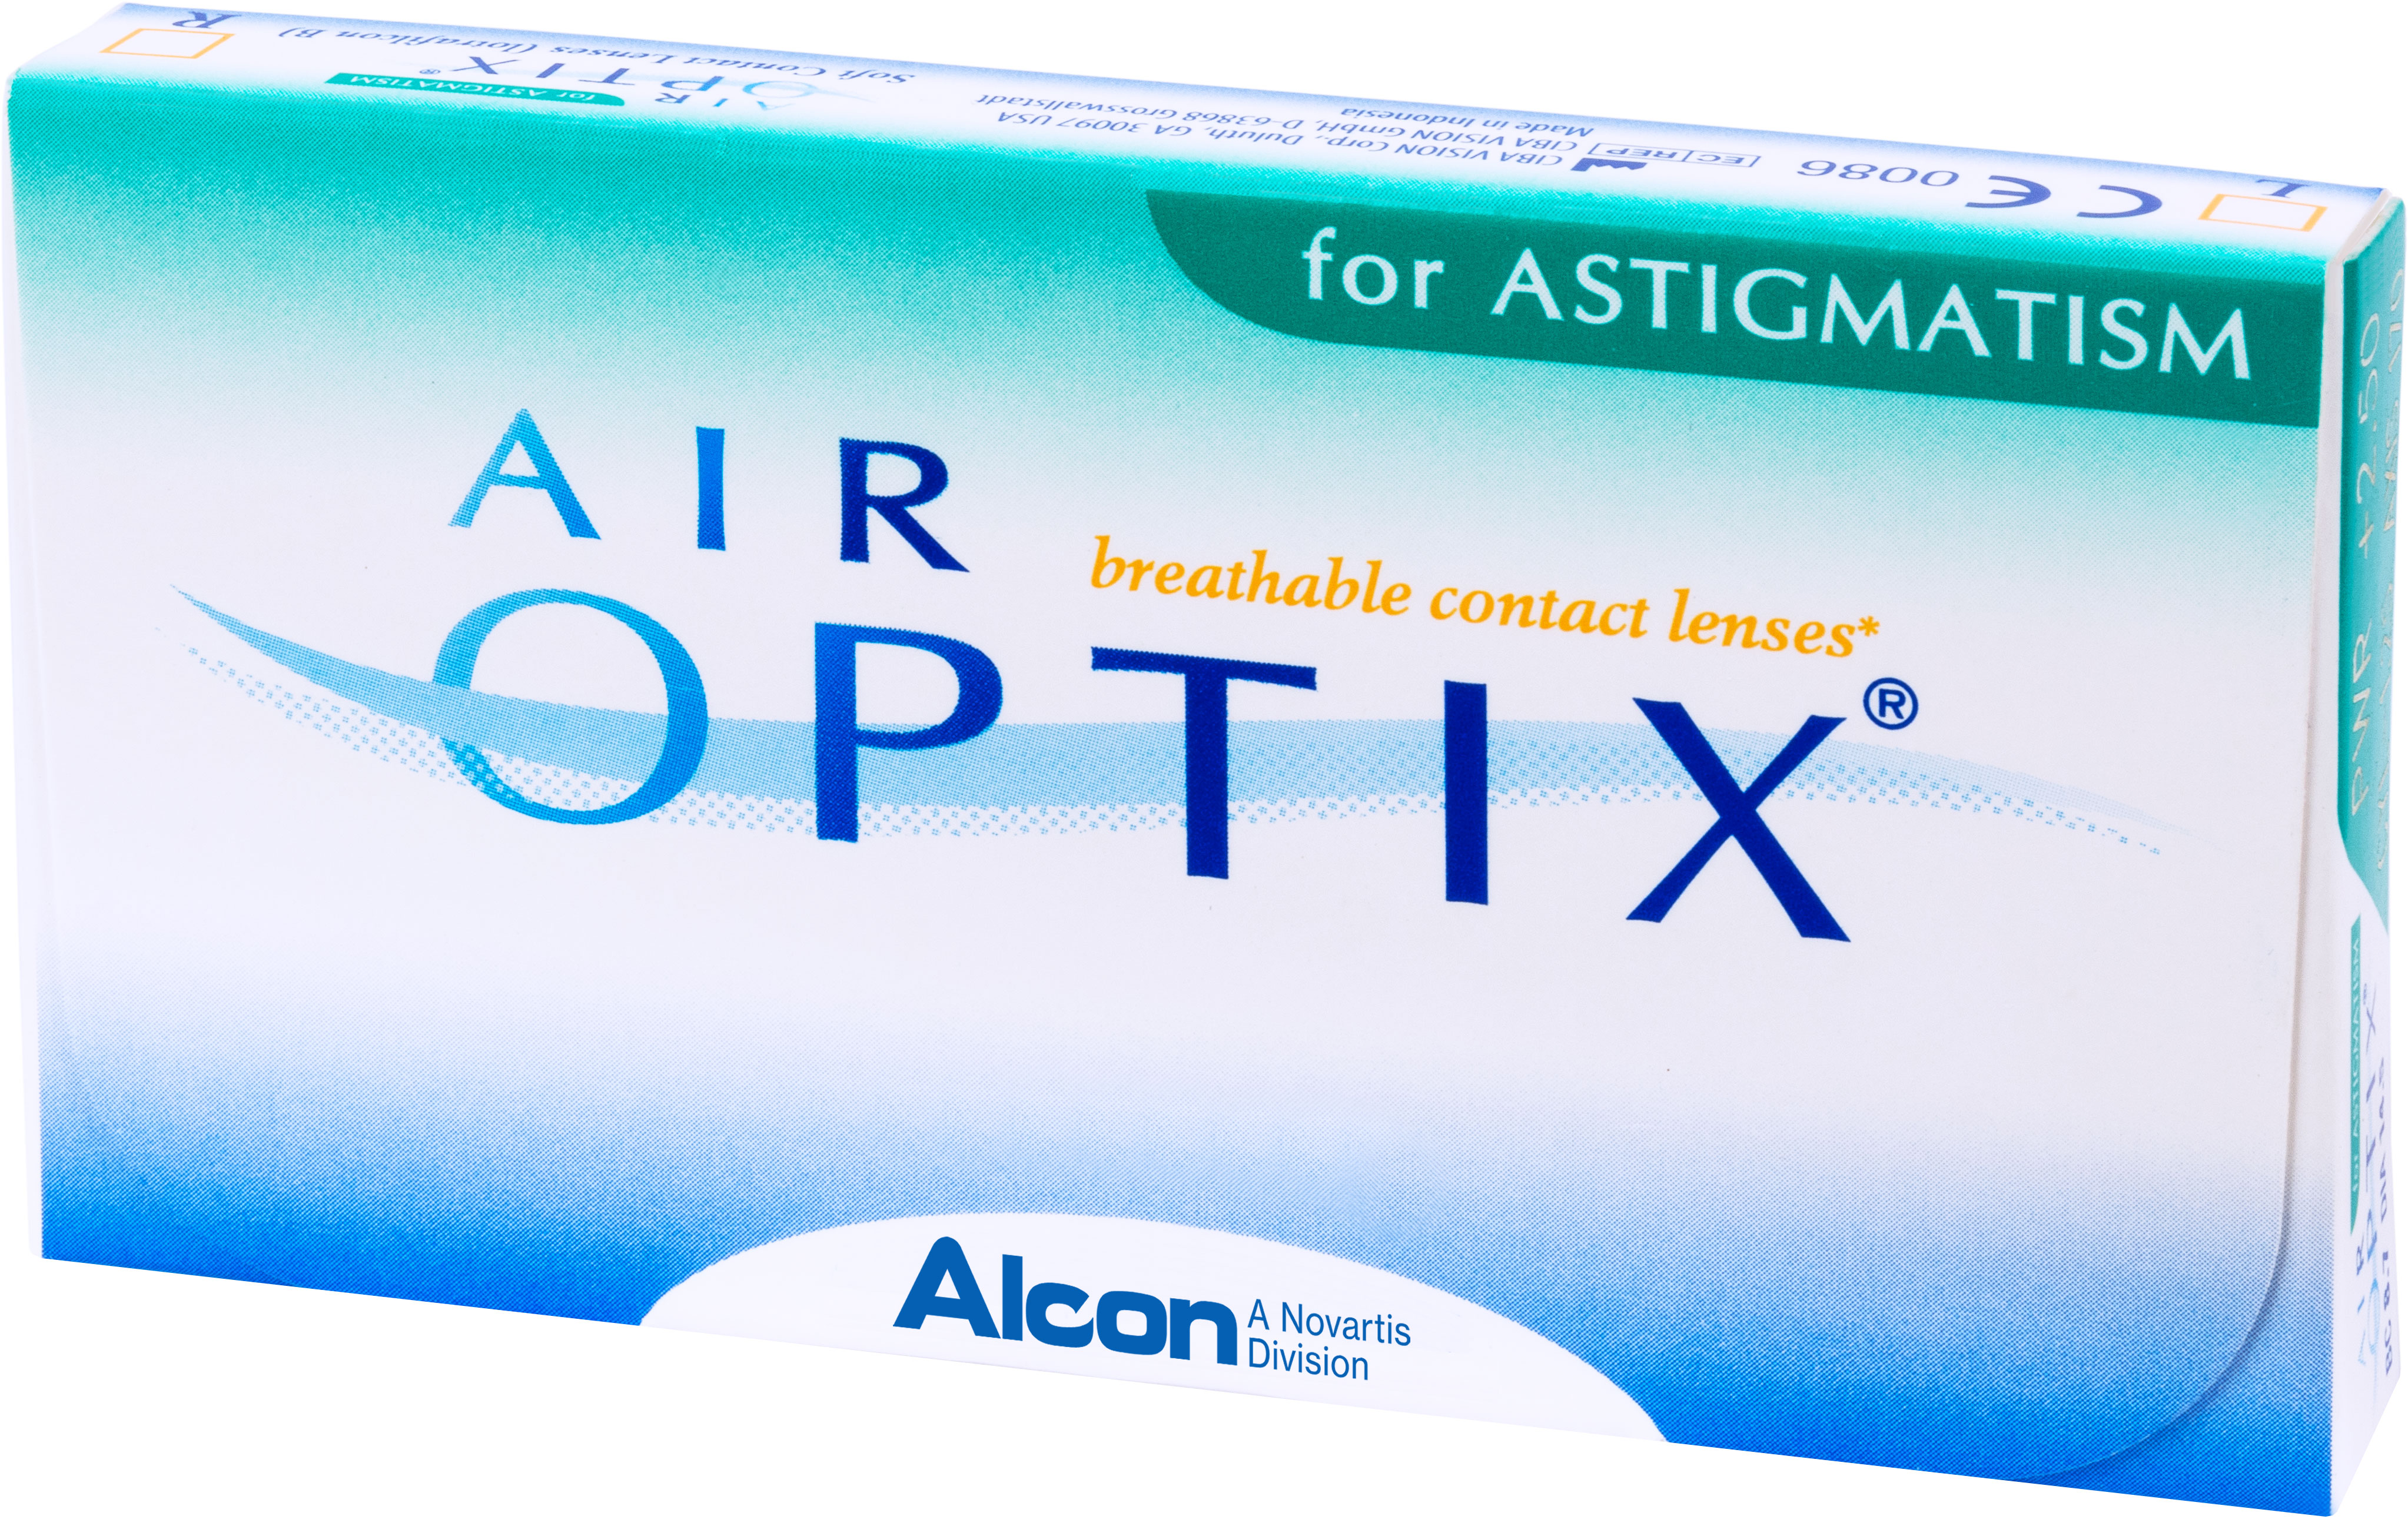 Аlcon контактные линзы Air Optix for Astigmatism 3pk /BC 8.7/DIA14.5/PWR -2.75/CYL -2.25/AXIS 130100015711with Hydraclear